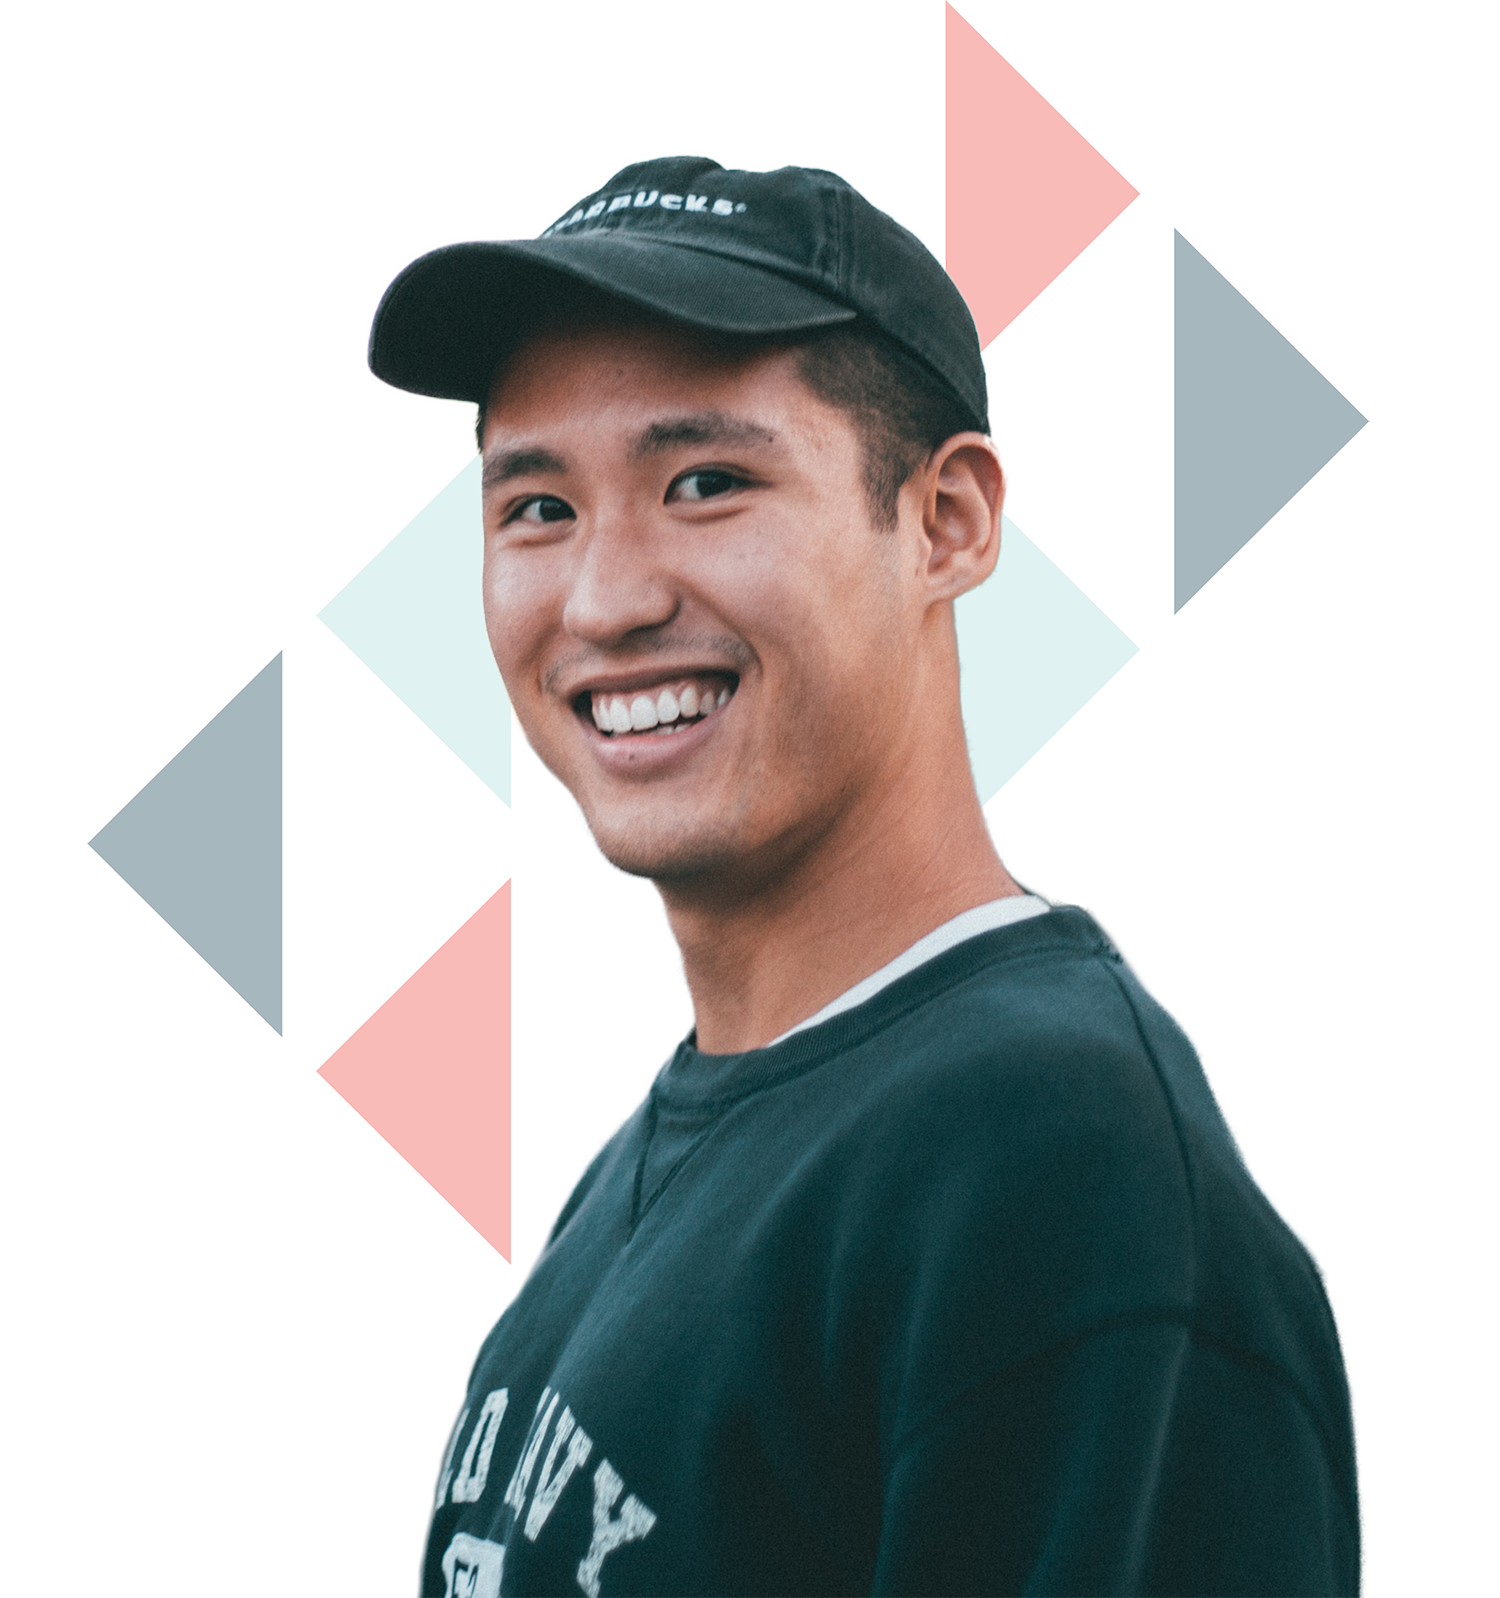 asian guy wearing a navy crew neck jacket and hat